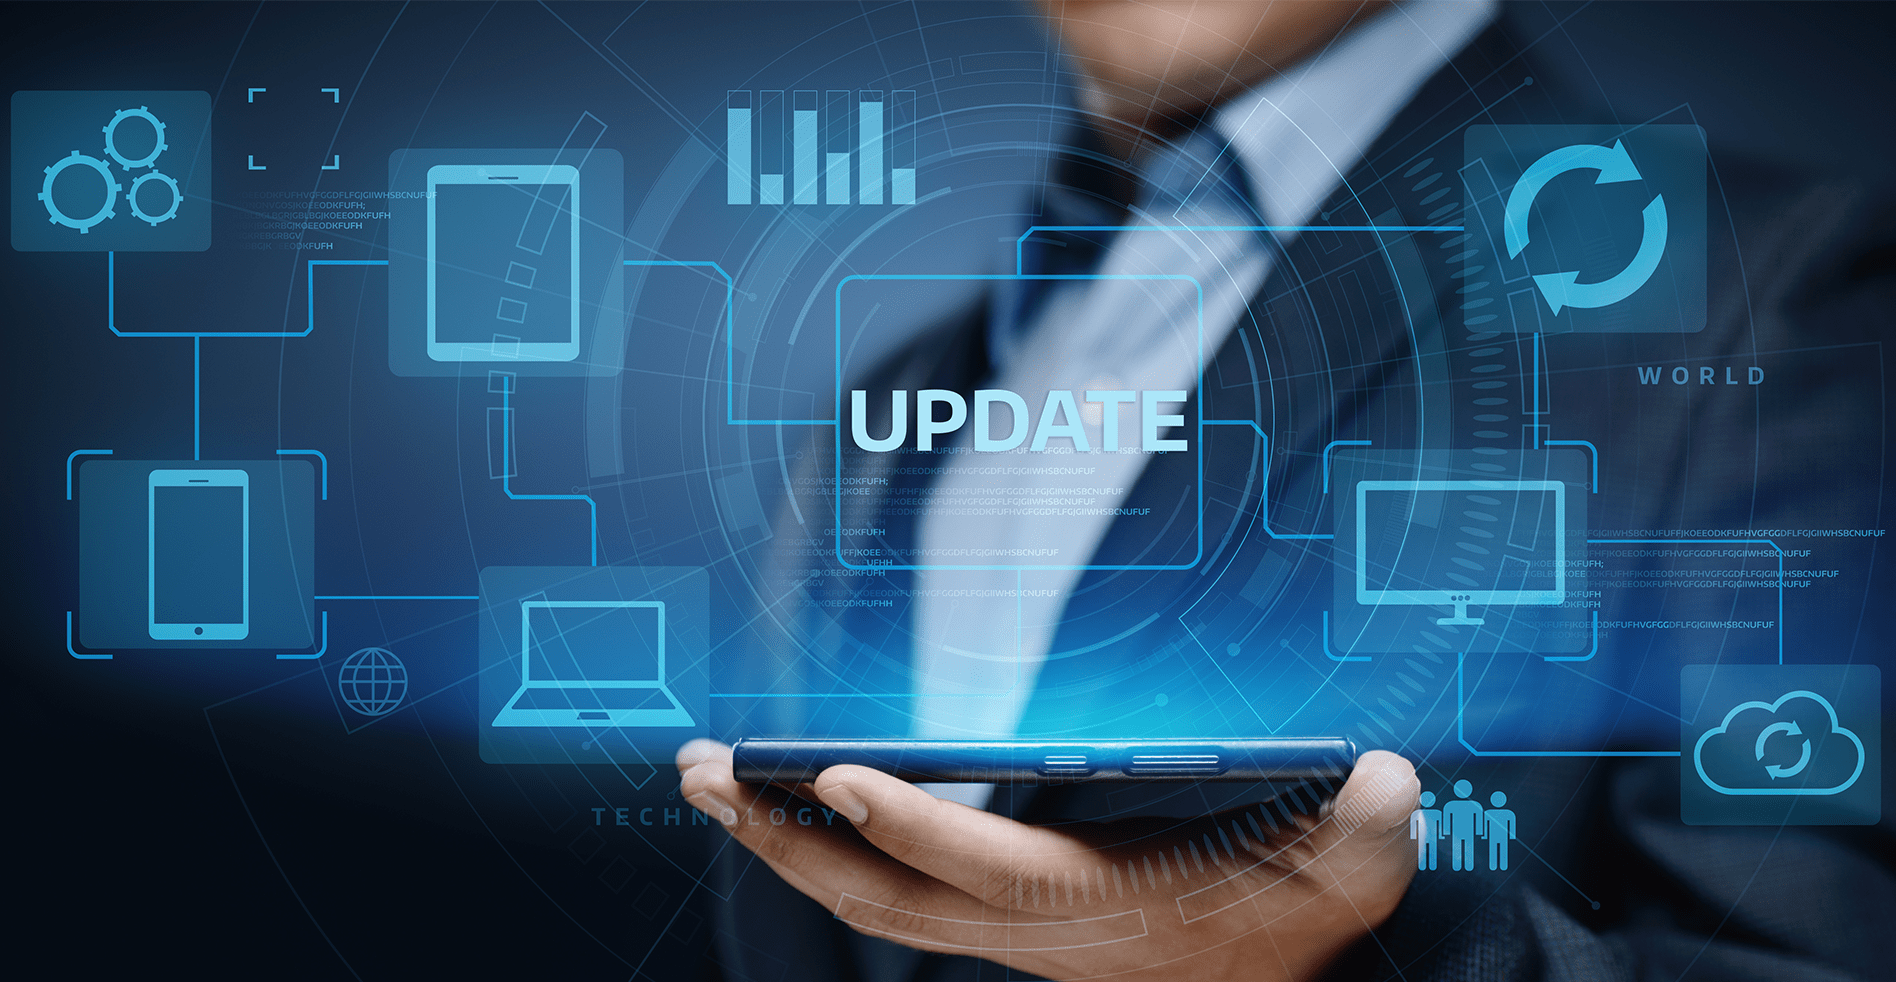 Update-your-business-tech